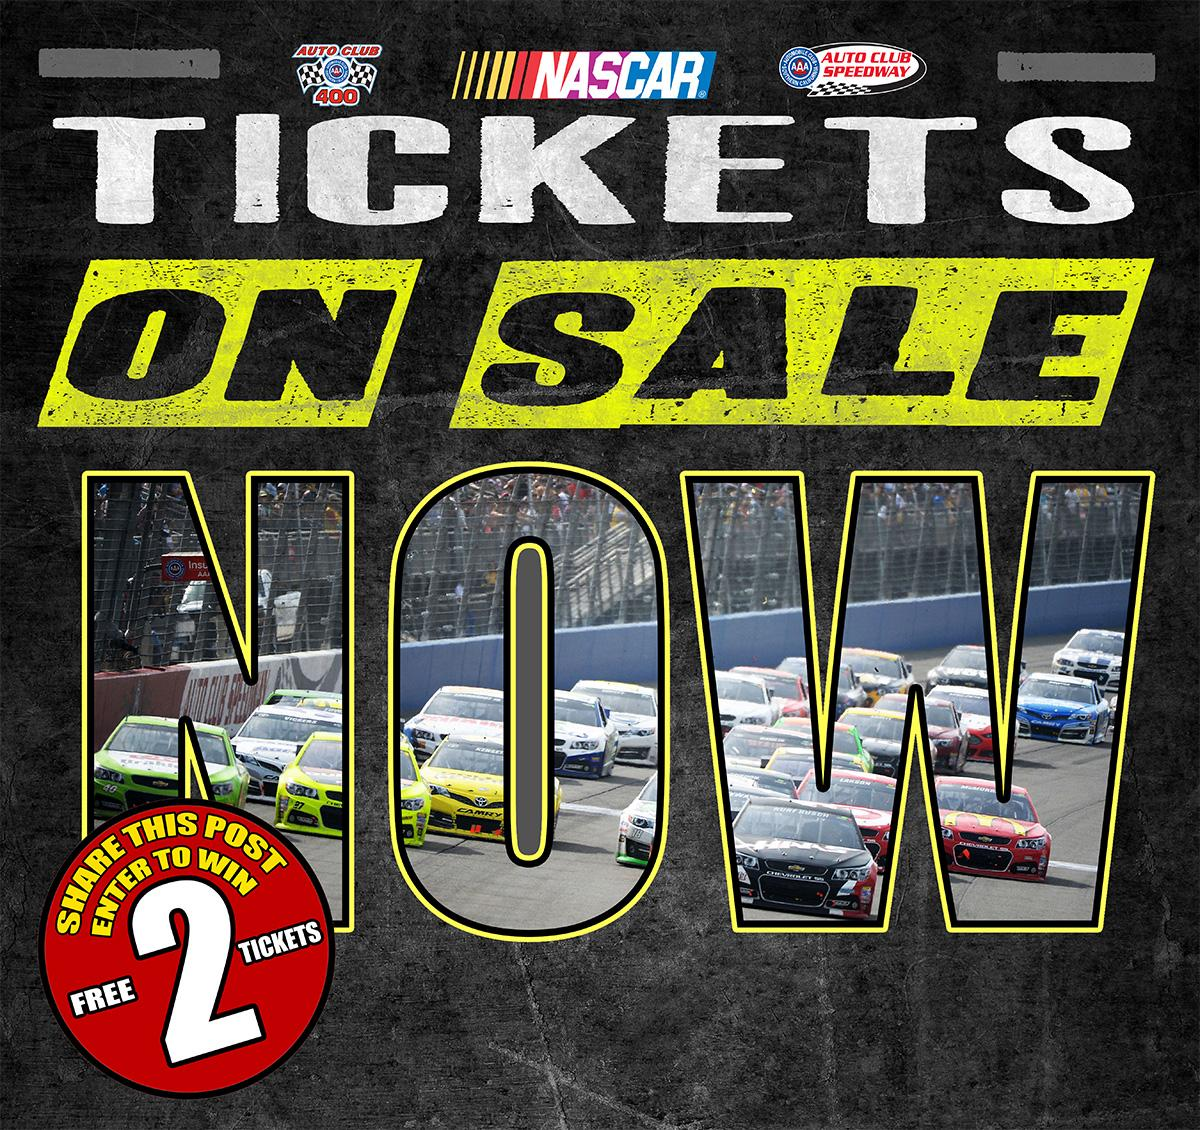 Retweet for a chance to WIN 2 FREE #NASCAR tickets at SoCal's @ACSupdates on 3/20/16 - http://t.co/8C9ZJzme7q http://t.co/Glzt5SzEr8